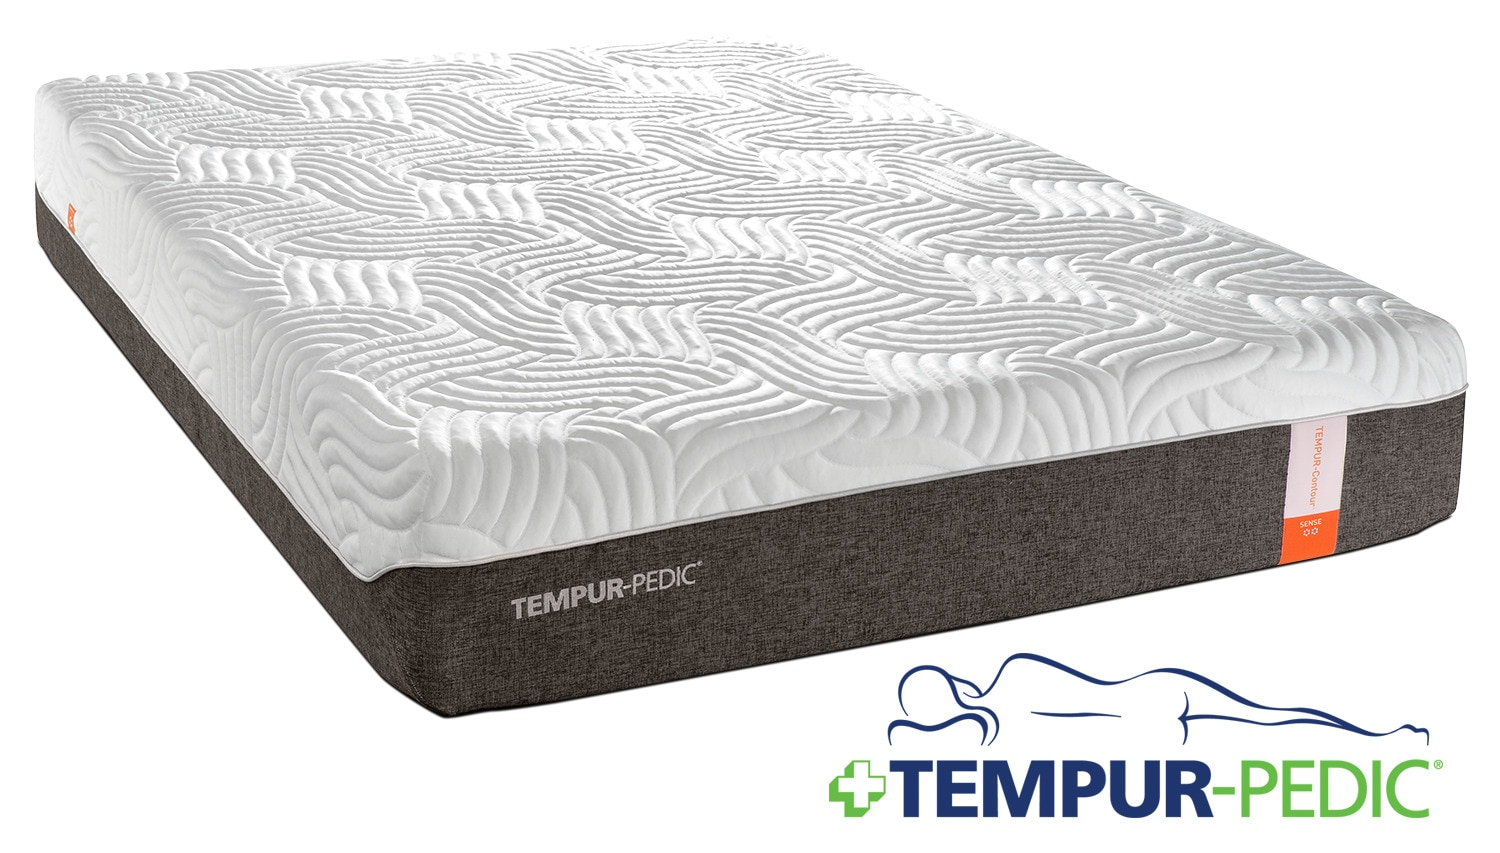 Tempurpedic Mattress King Size Tempur Pedic Sense 2 Firm King Mattress Leon 39s